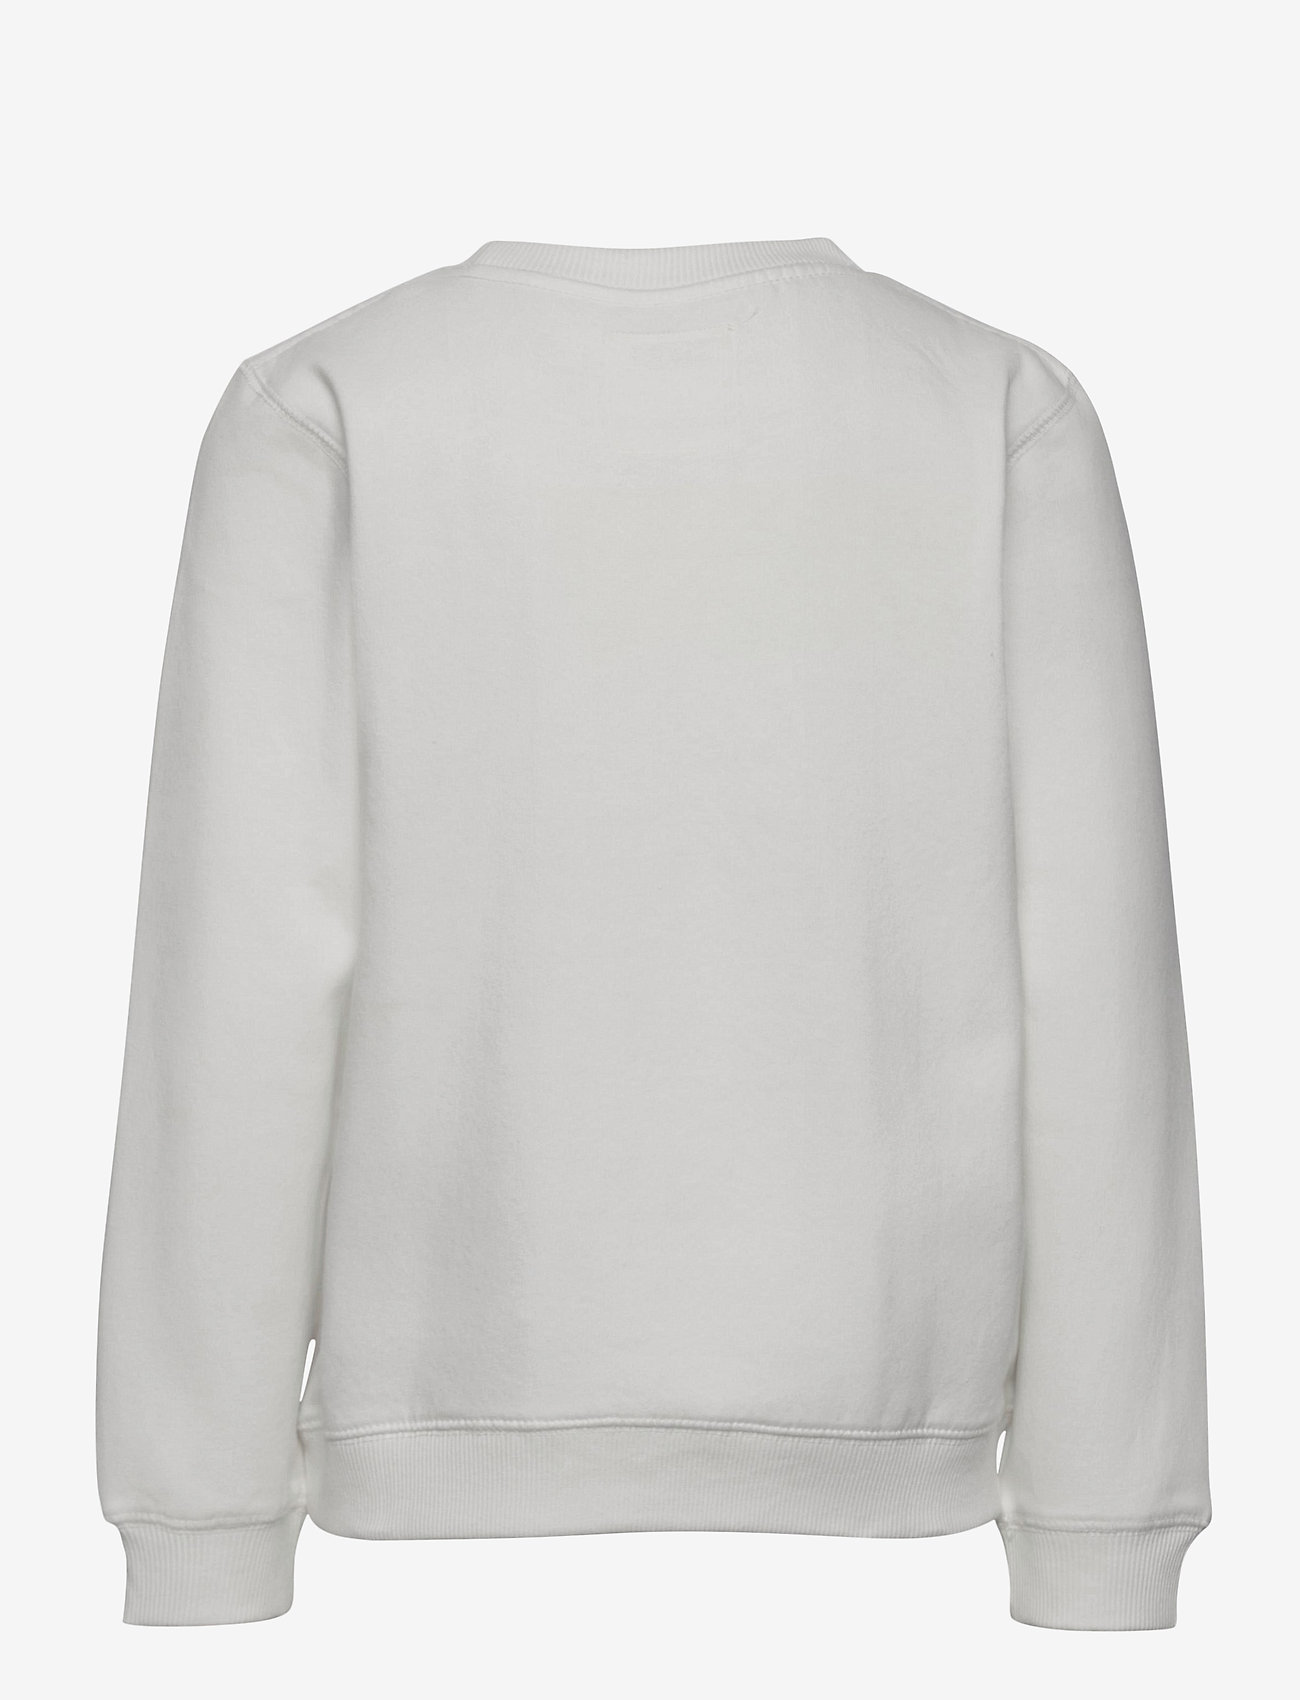 Levi's - SWEAT SHIRT - sweatshirts - marshmallow - 1